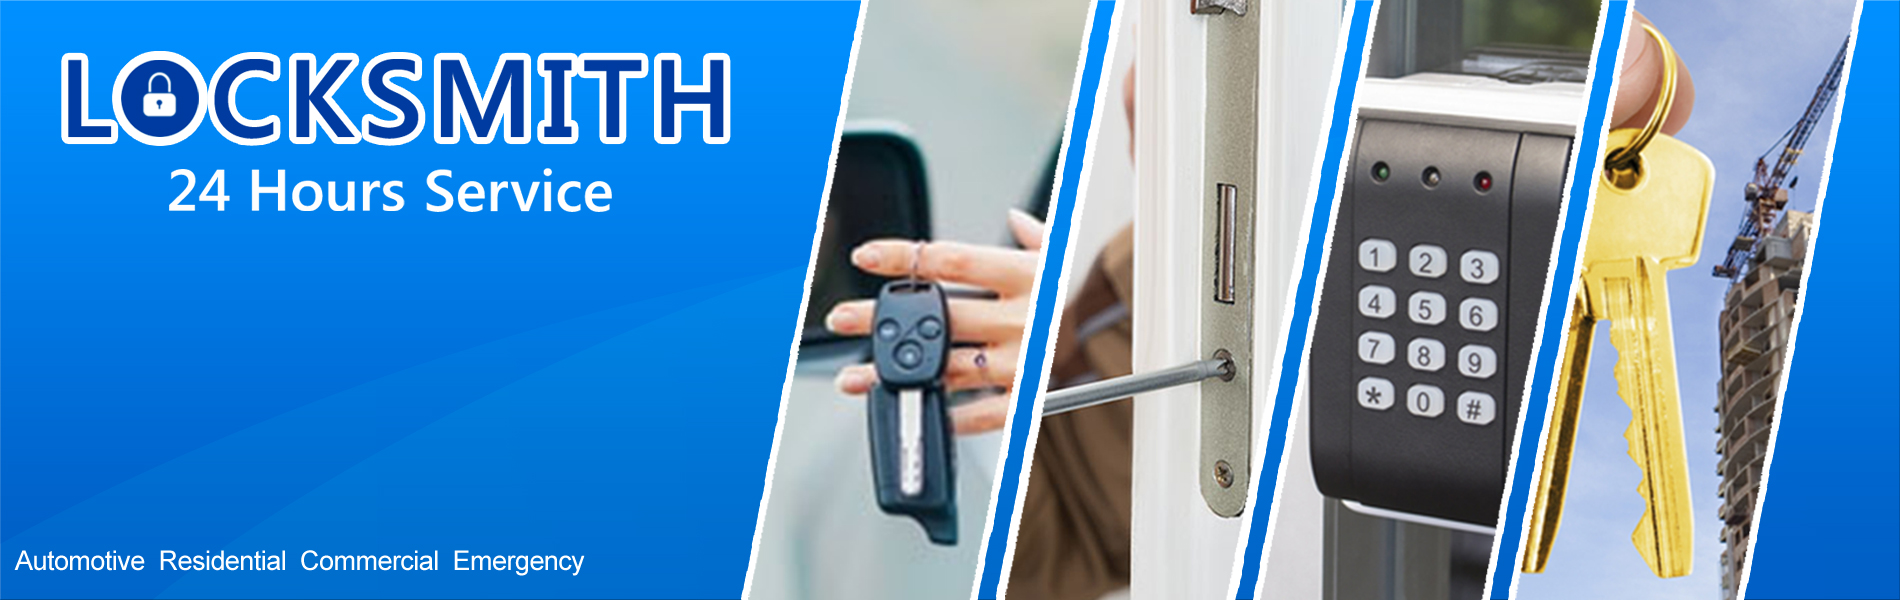 Closter Locksmith Service, Closter, NJ 201-402-2704